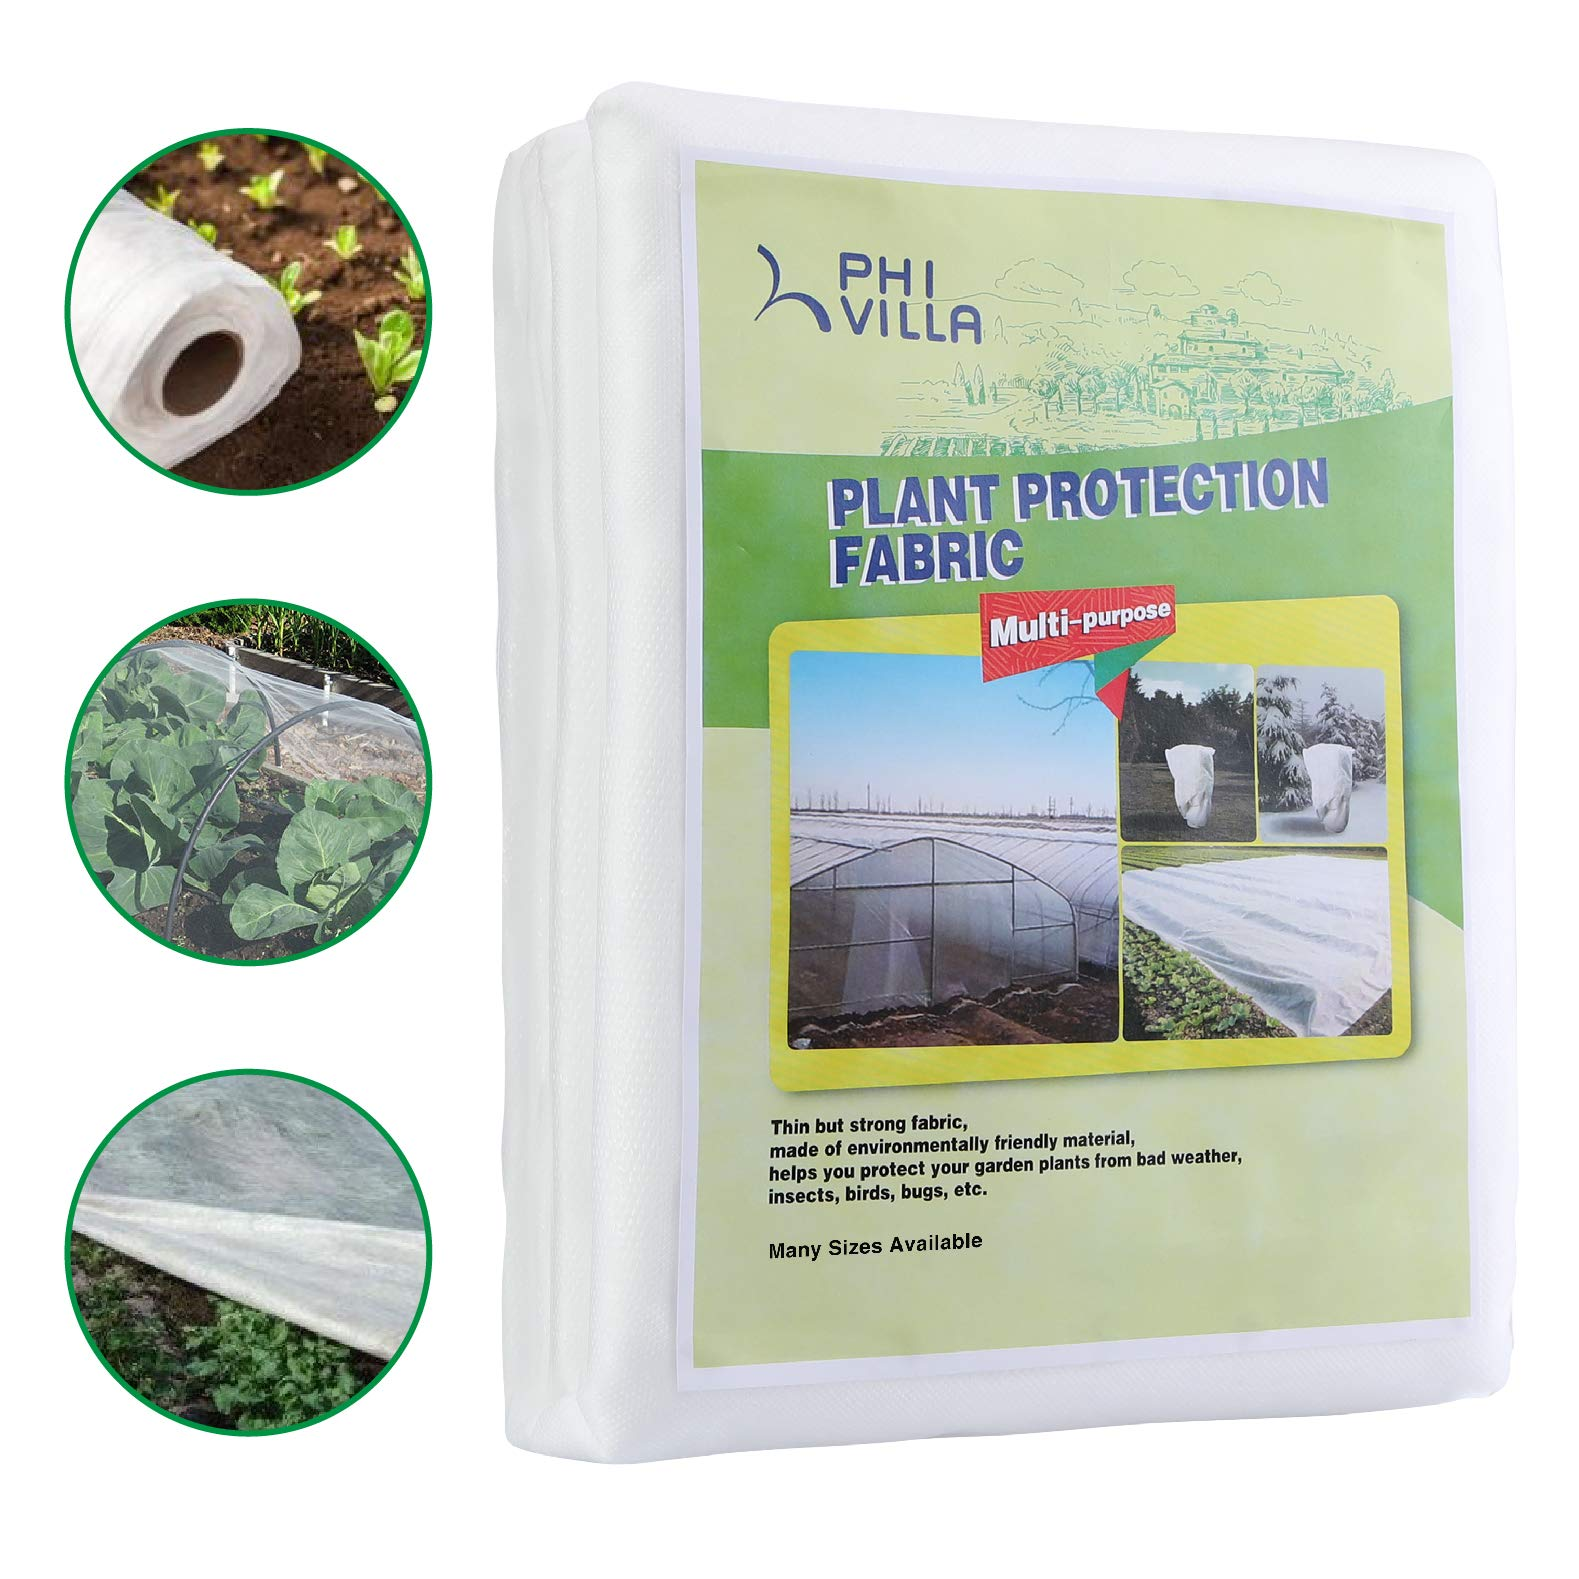 PHI VILLA Floating Row Cover Plant Blanket 0.7oz Fabric 8x100ft,Seed Germination and Frost Protection by PHI VILLA